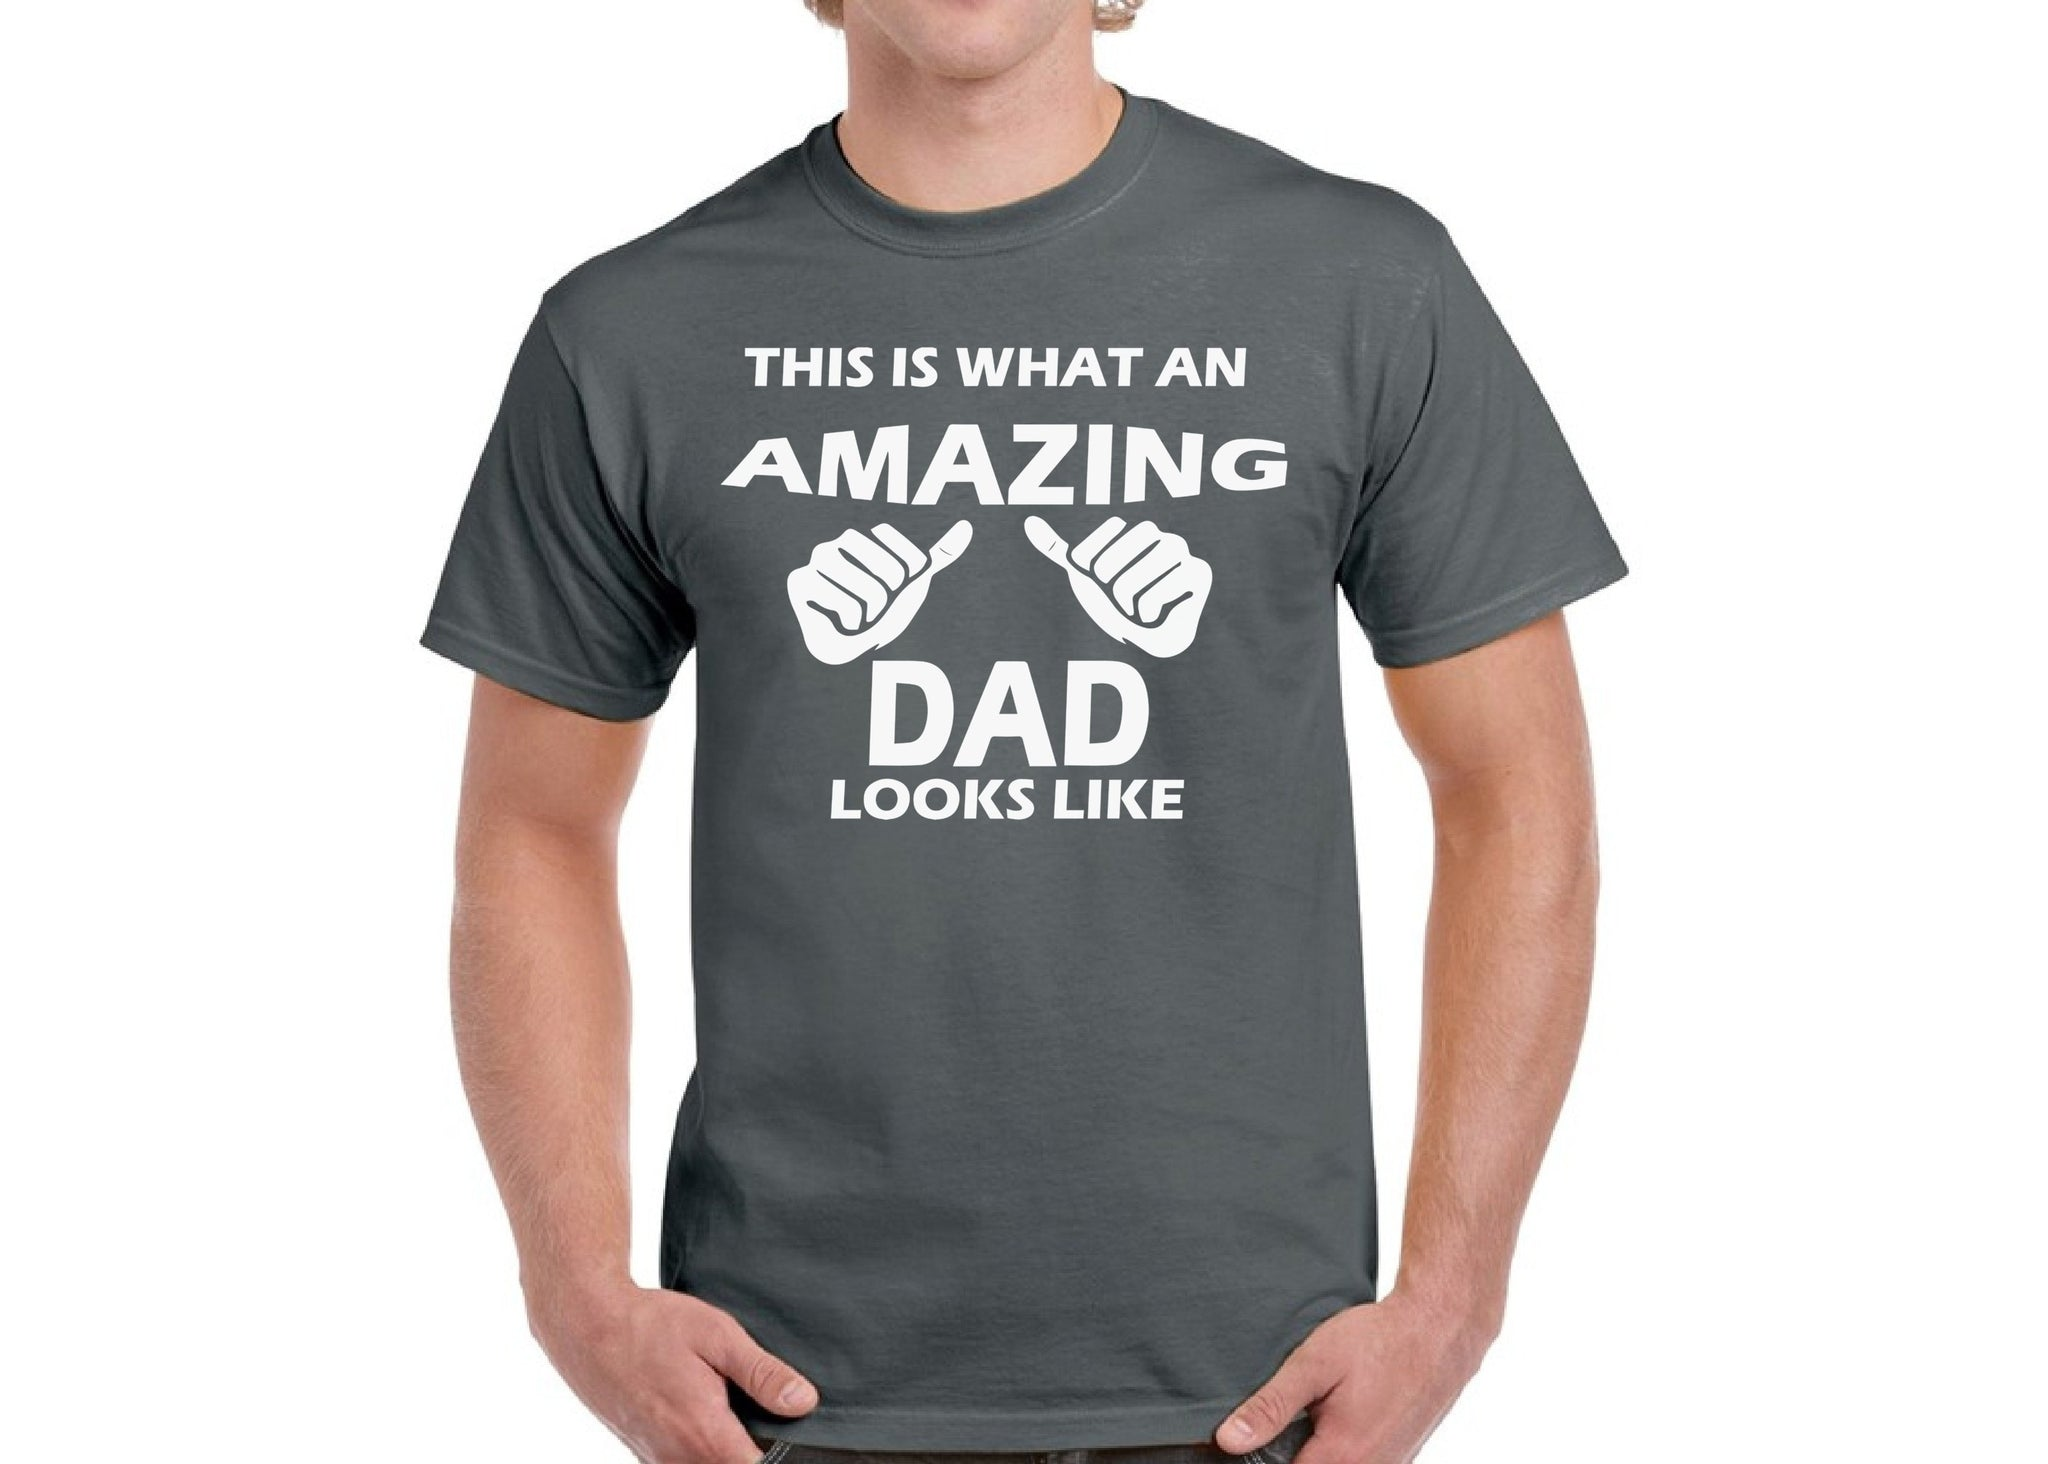 af797a04 Amazing Dad, Dad T-Shirt - Men's T-Shirt | Short Sleeve | Tee ...